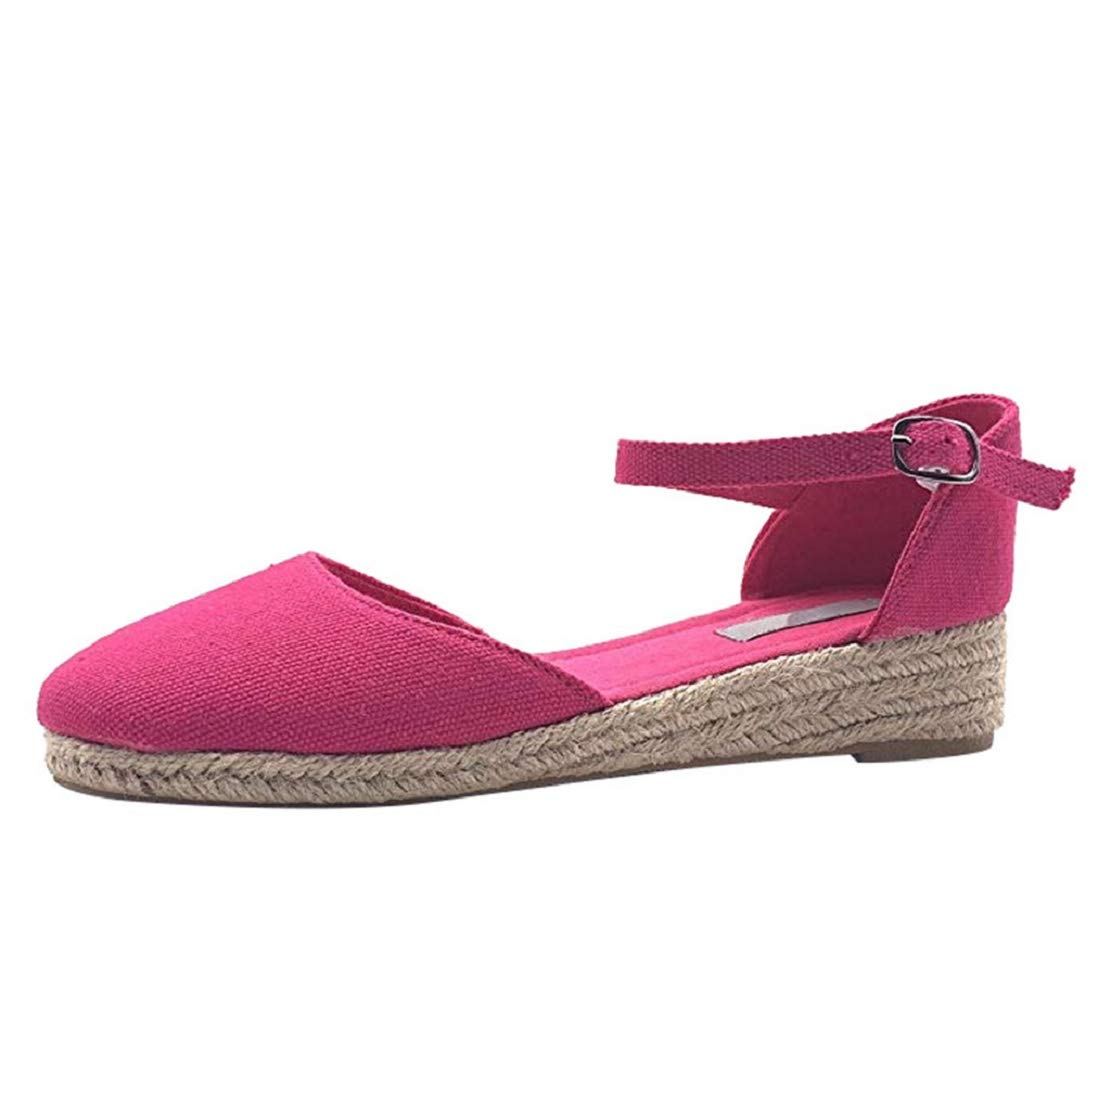 Women Closed Toe Straw Sandals Summer Fashion Strappy Espadrille Ankle Strap Wedge Low Heel Sandals by Lowprofile Hot Pink